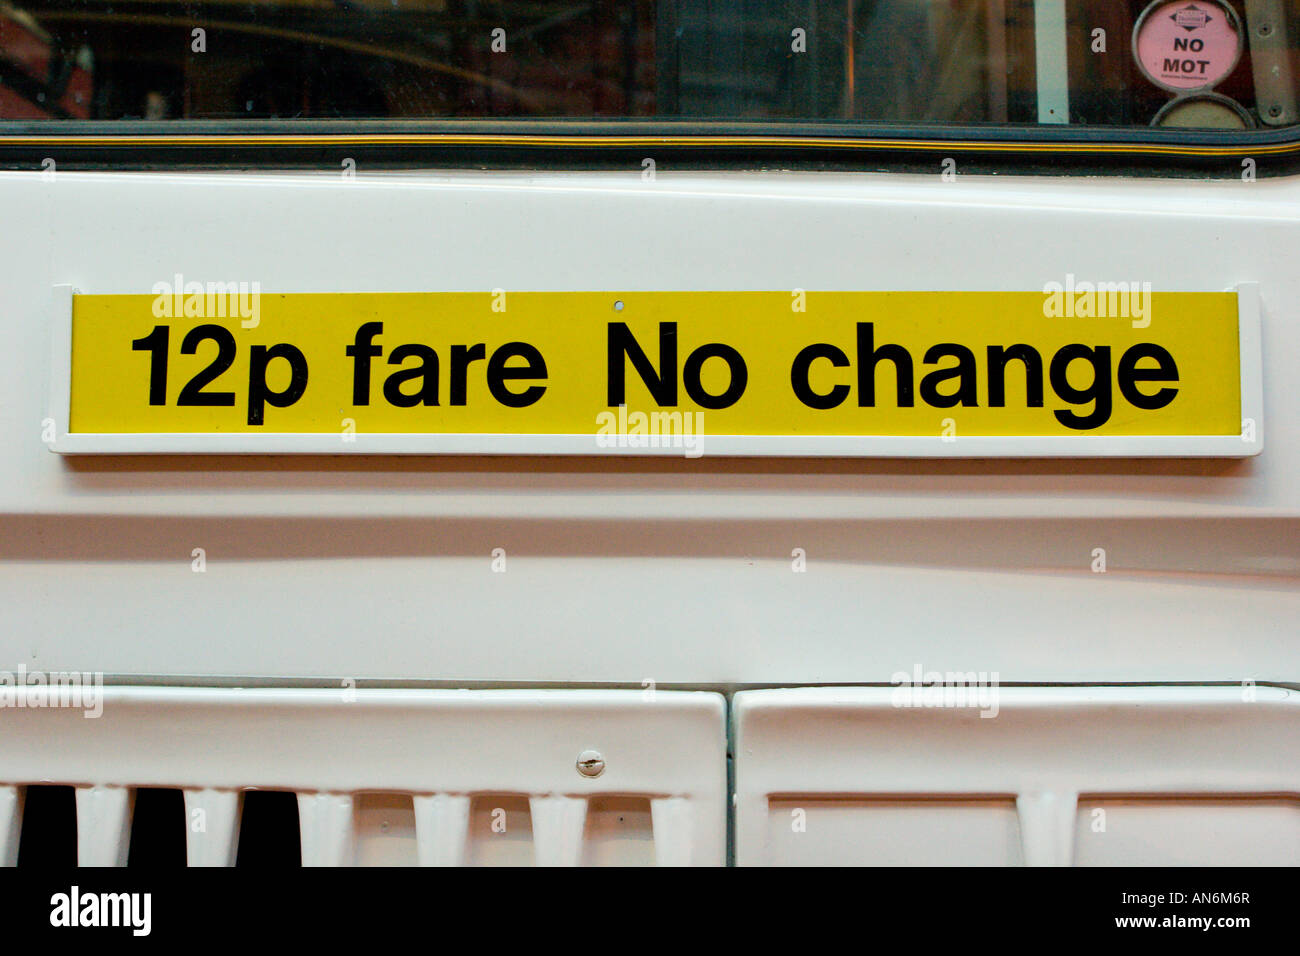 Fare Bus Stock Photos & Fare Bus Stock Images - Alamy